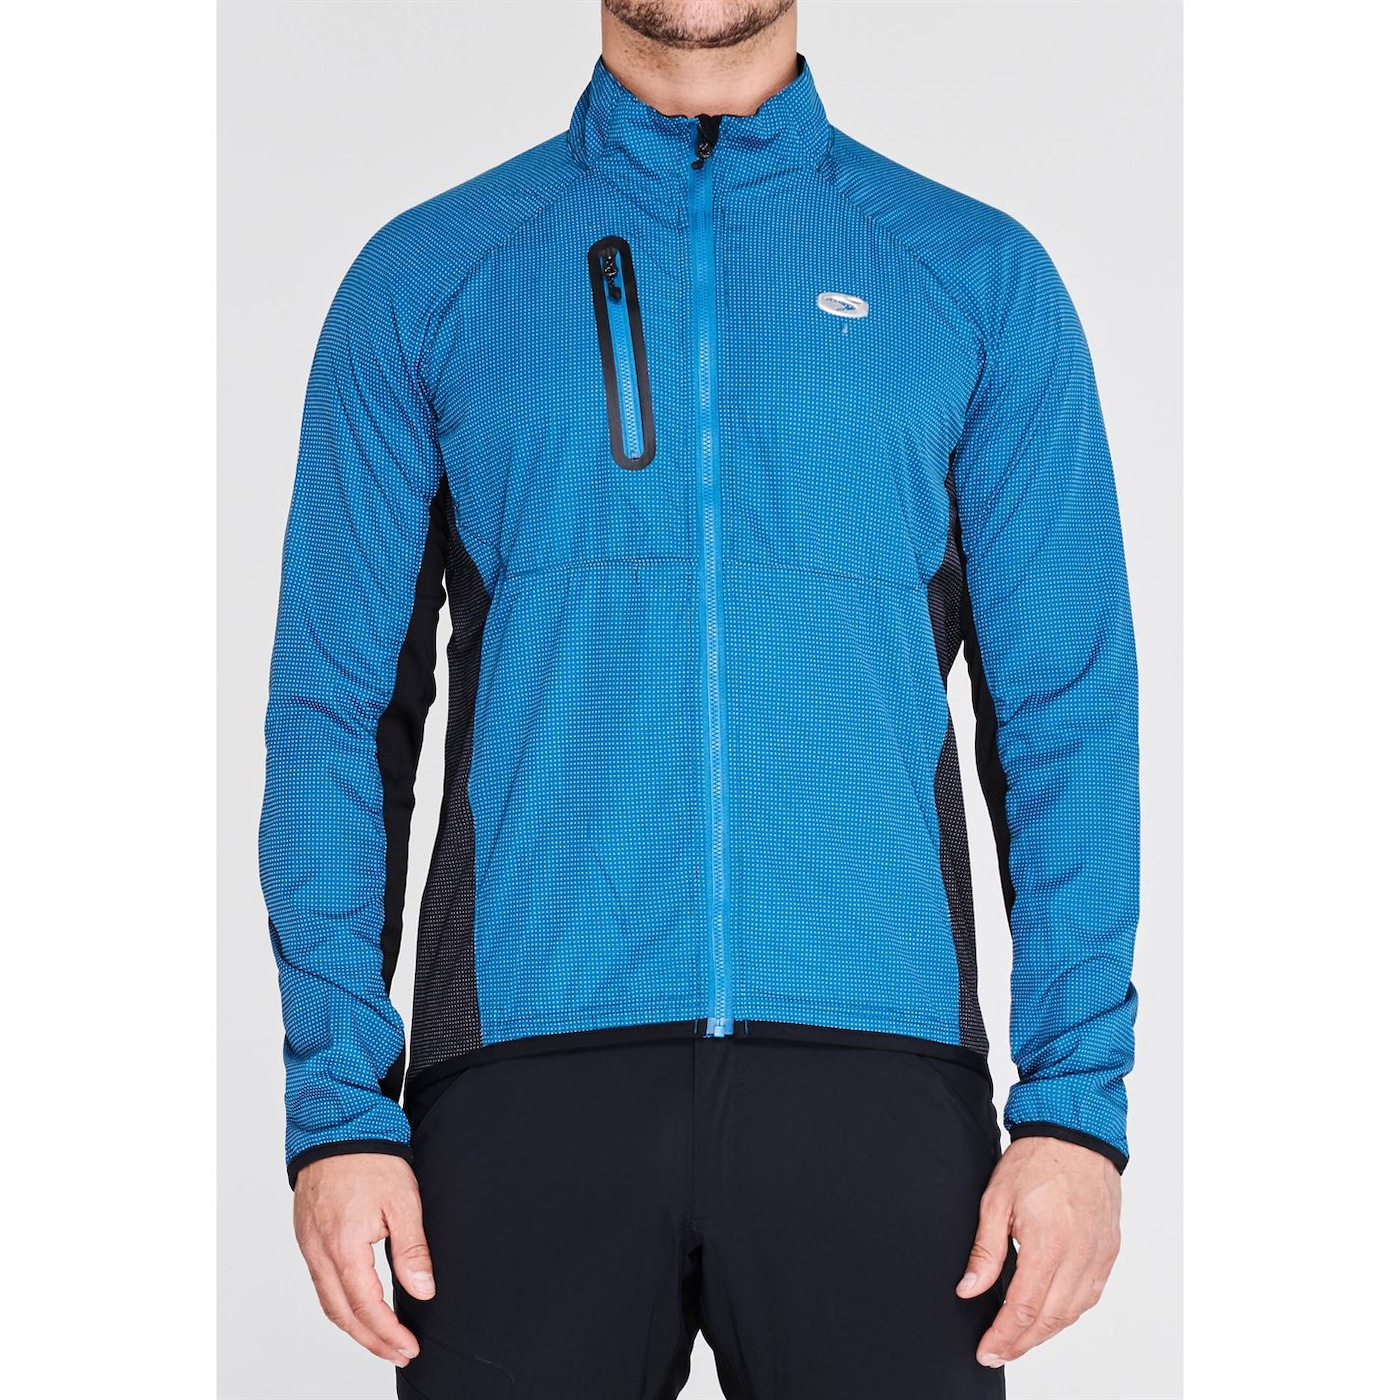 Sugoi RS Zap Jacket Mens